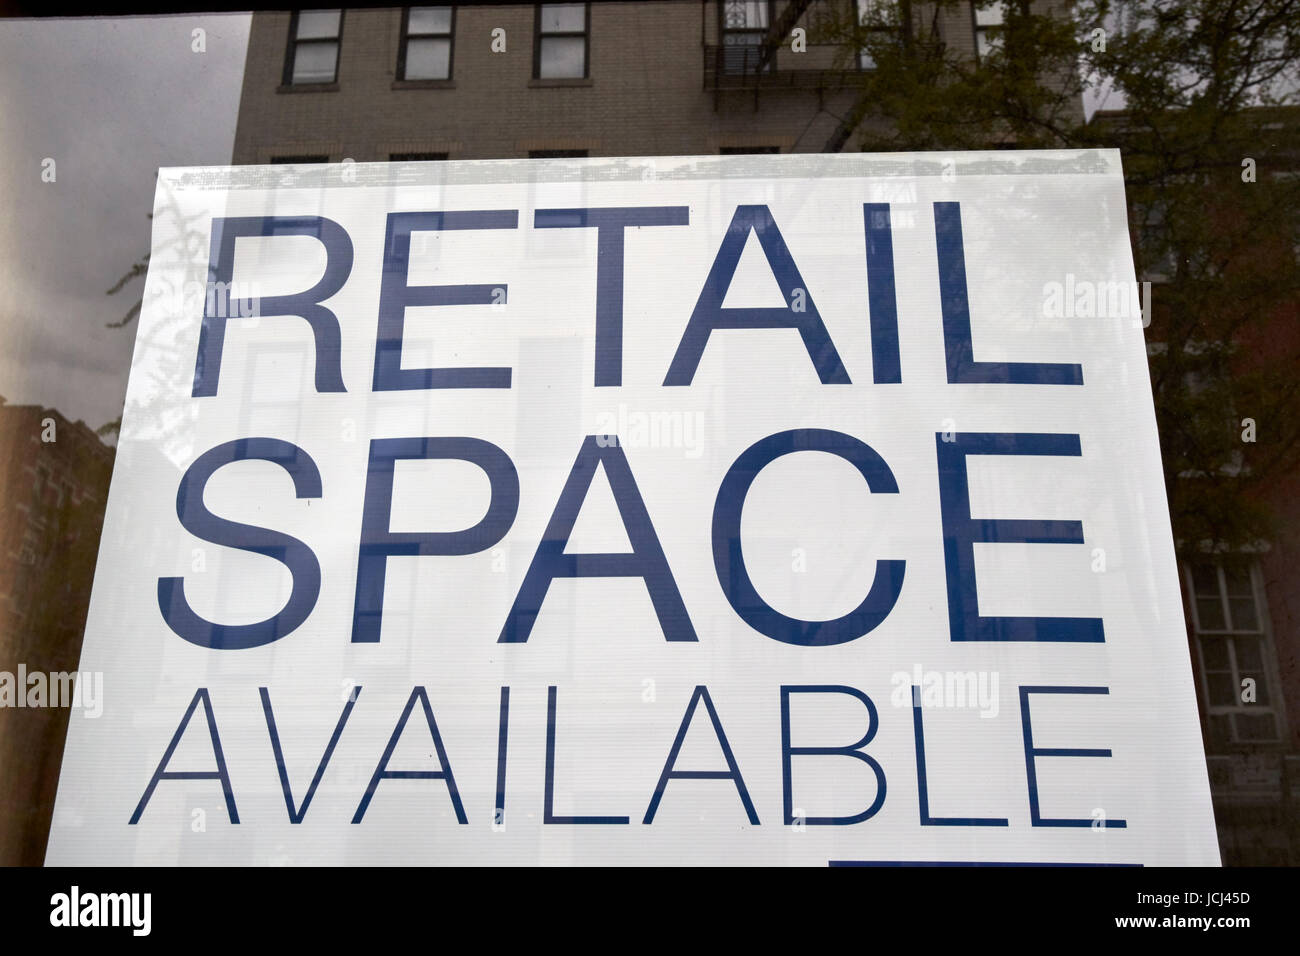 retail space available empty store front greenwich village New York City USA - Stock Image